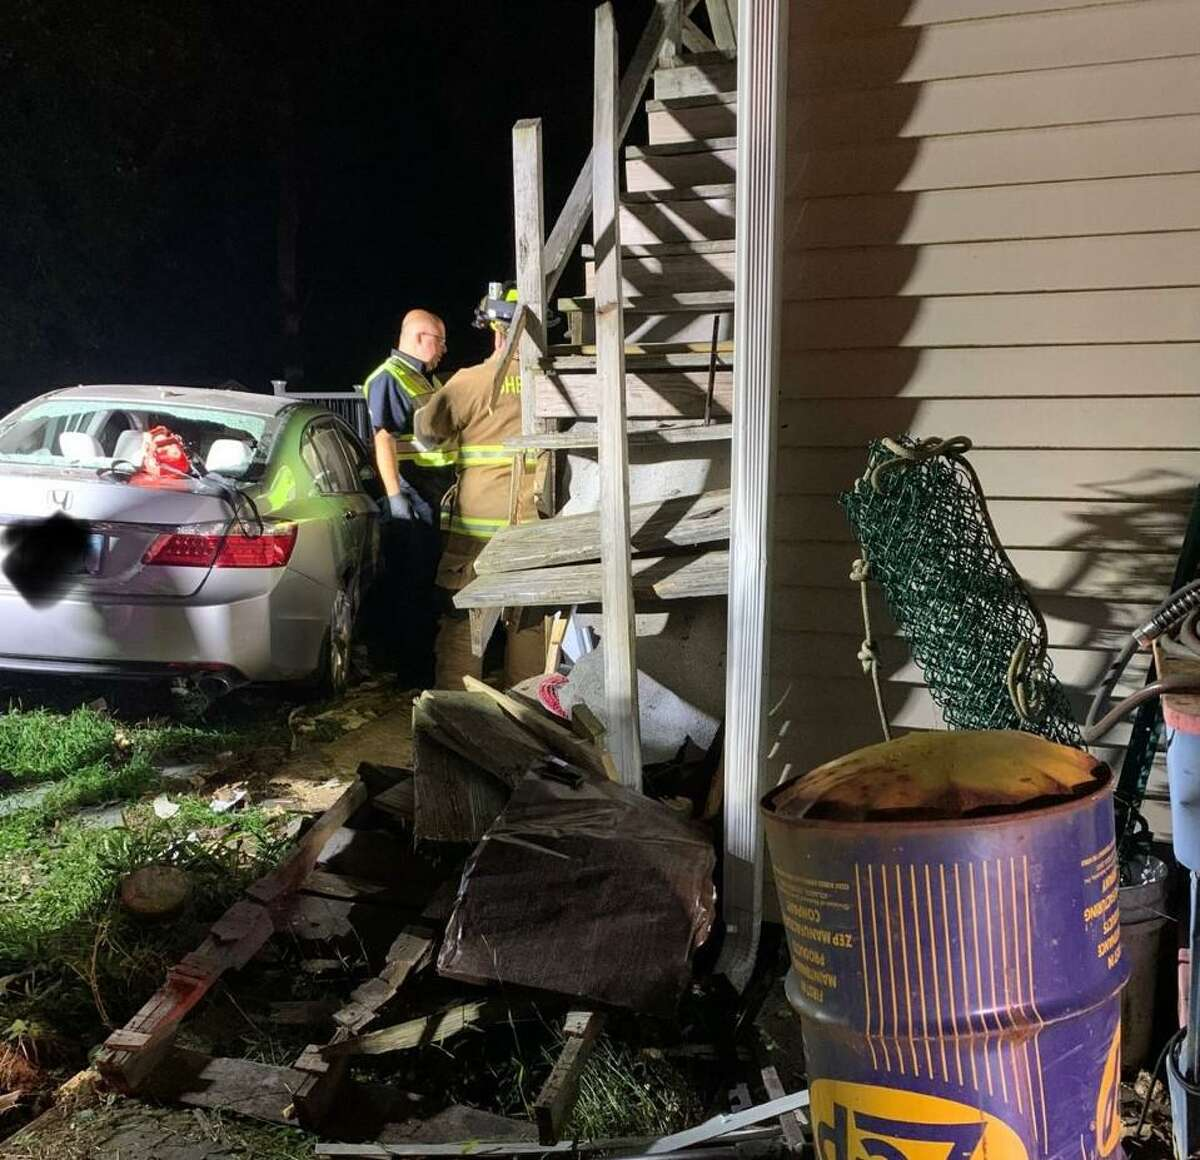 Shelton firefighters and emergency personnel arrived at the Waverly Road home about 8 p.m. Monday, Sept. 20, 2021, finding a sedan in the rear yard wedged between the home and a large wood pile. The driver needed to be removed from the vehicle and transported to the hospital for evaluation.